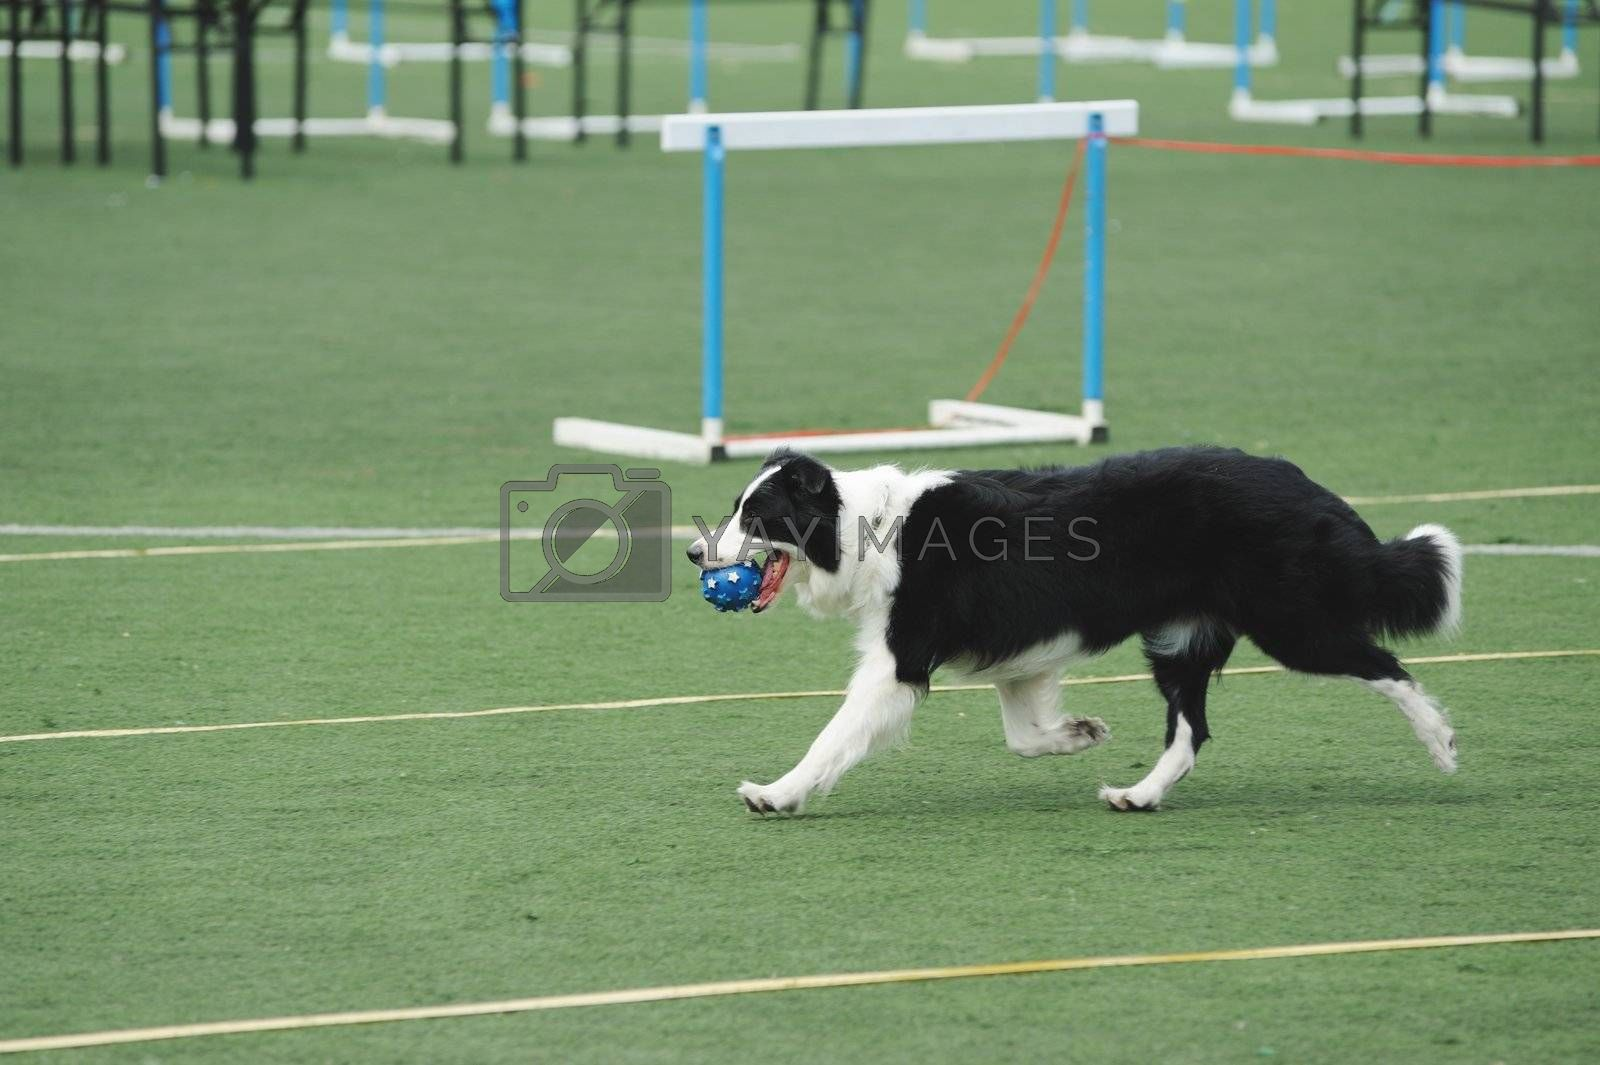 Border Collie holding a ball in the mouth and running on the playground